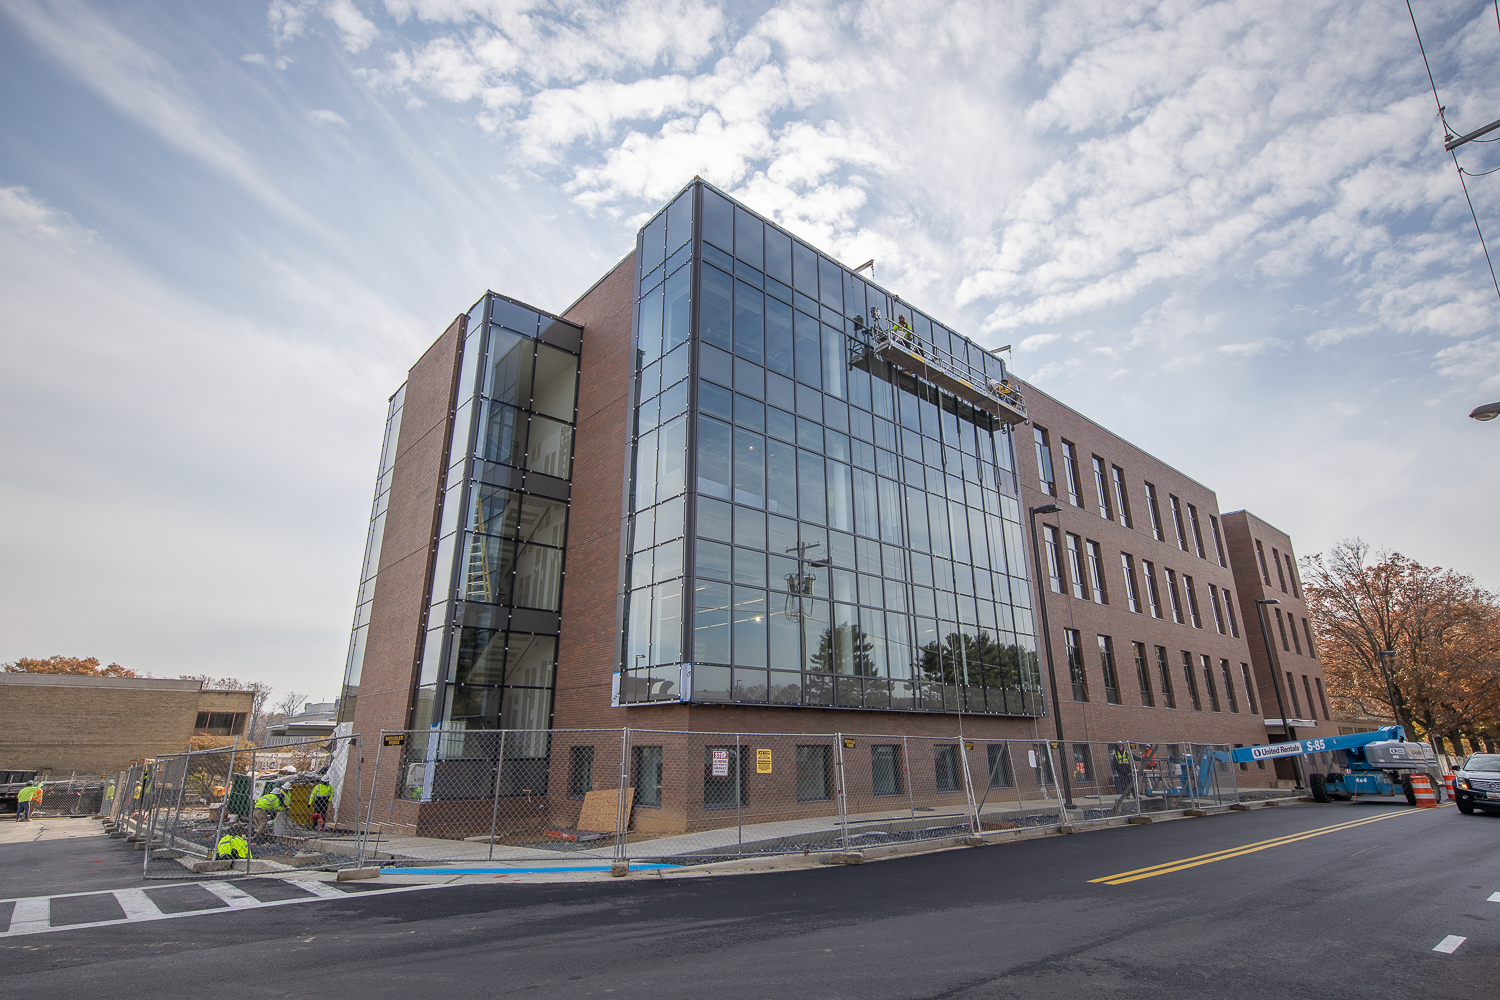 New Student Service Center will be opened in June 2020.